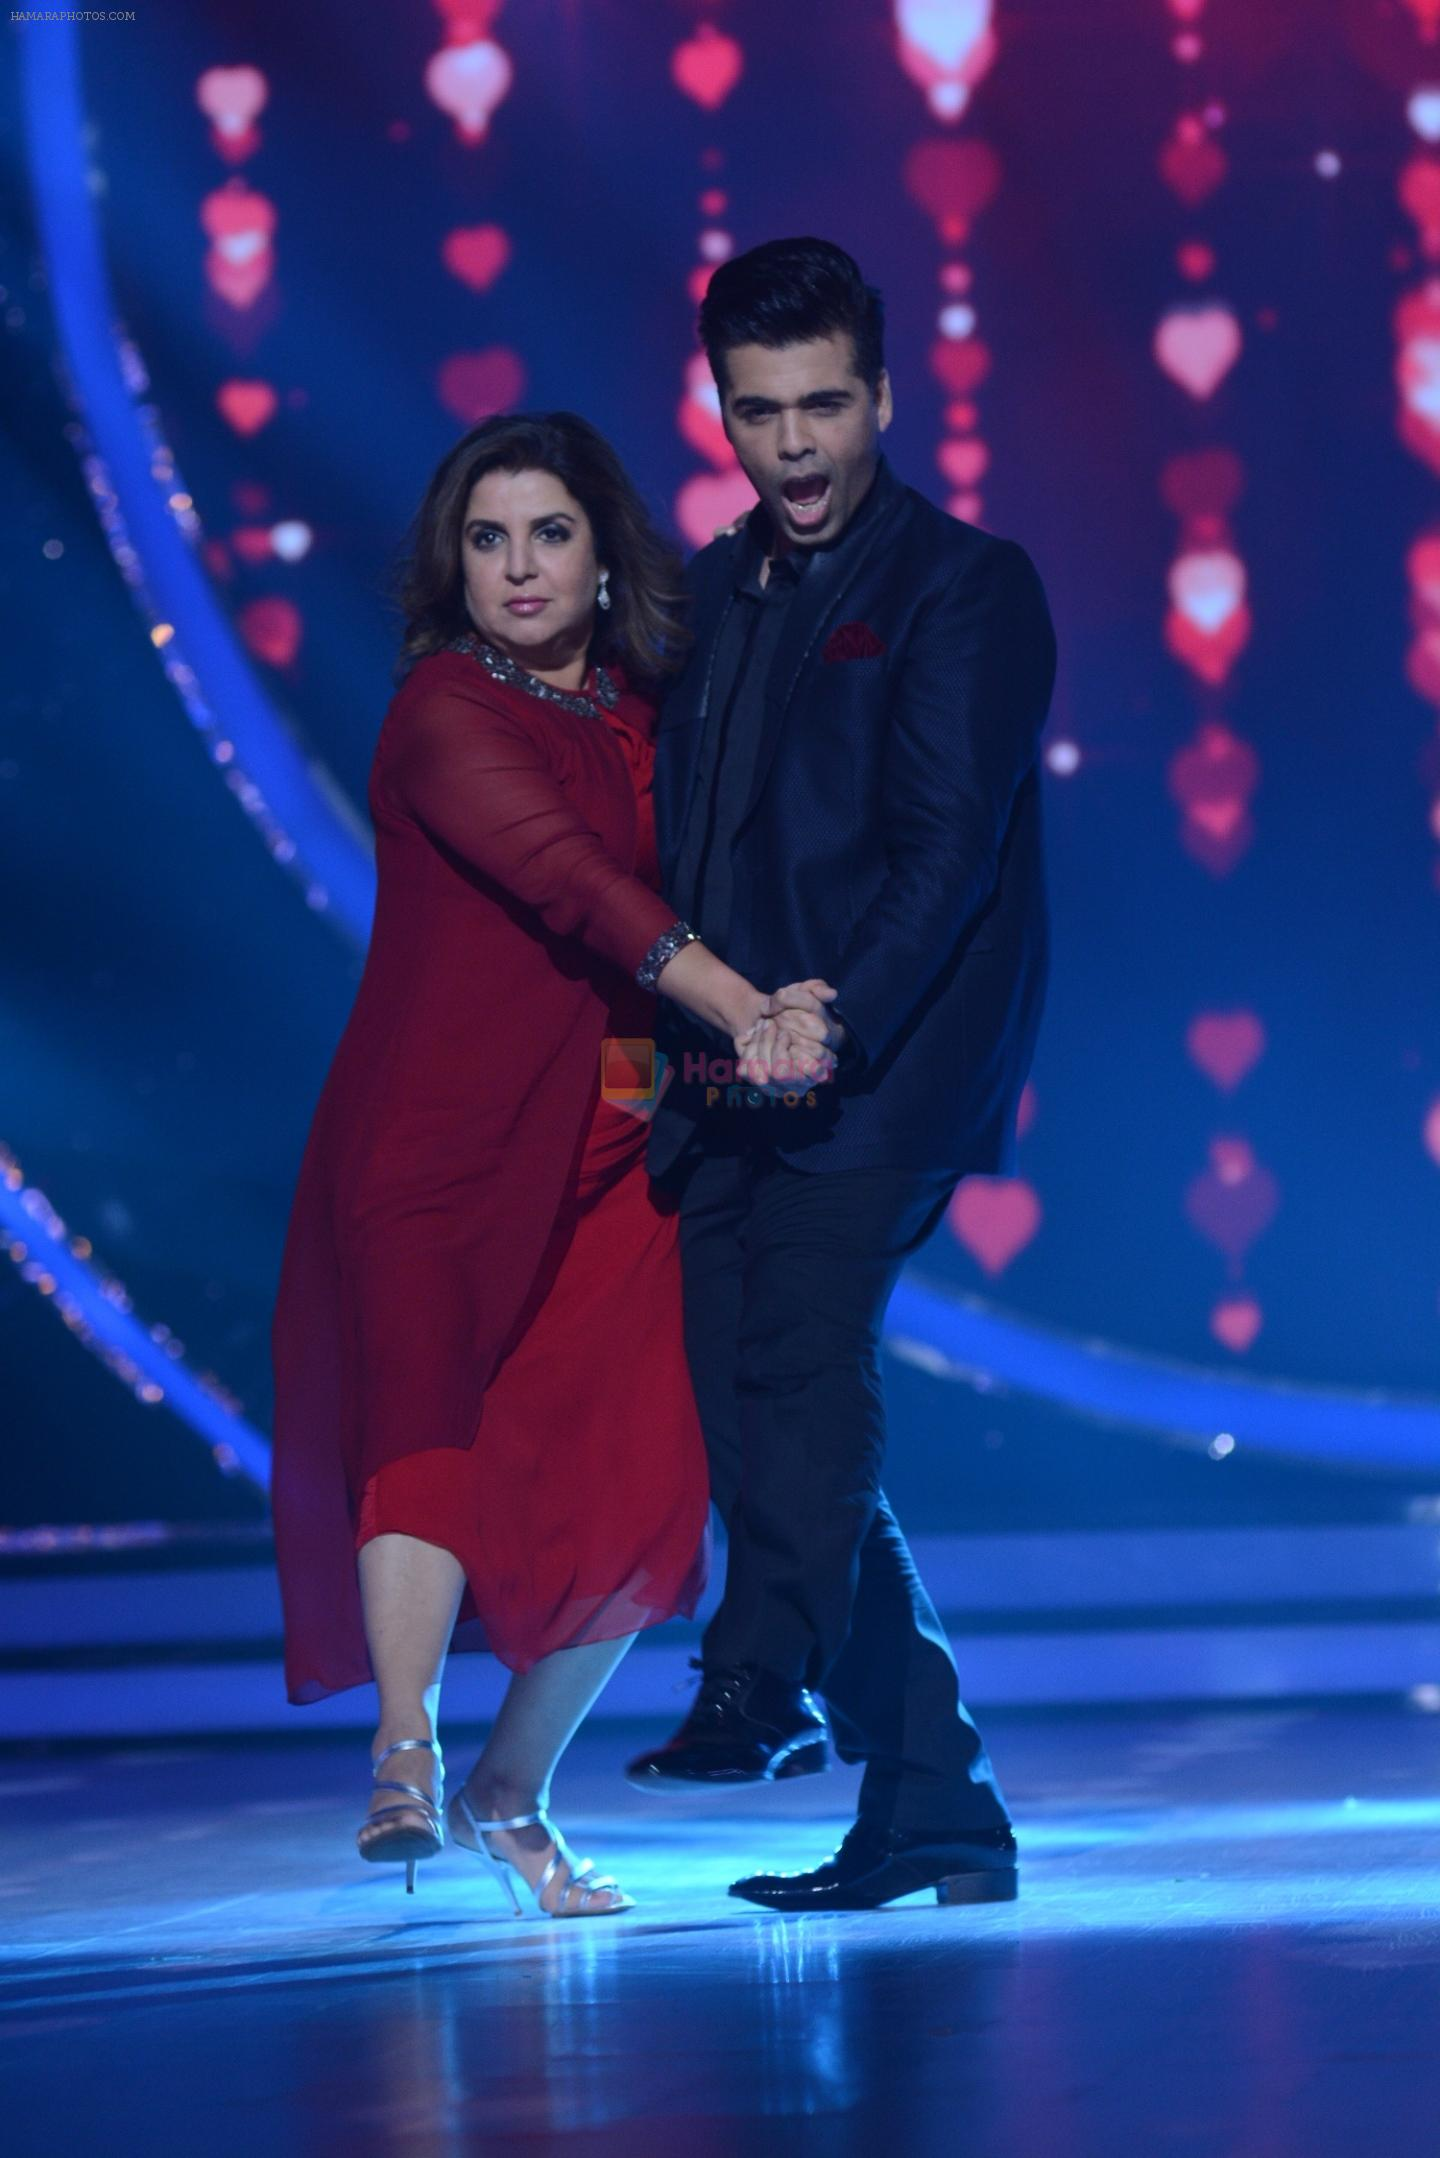 Karan Johar, Farah Khan on the sets of Jhalak Dikhhla Jaa for the promotion of his upcoming movie Ae Dil Hai Mushkil on 17th Oct 2016